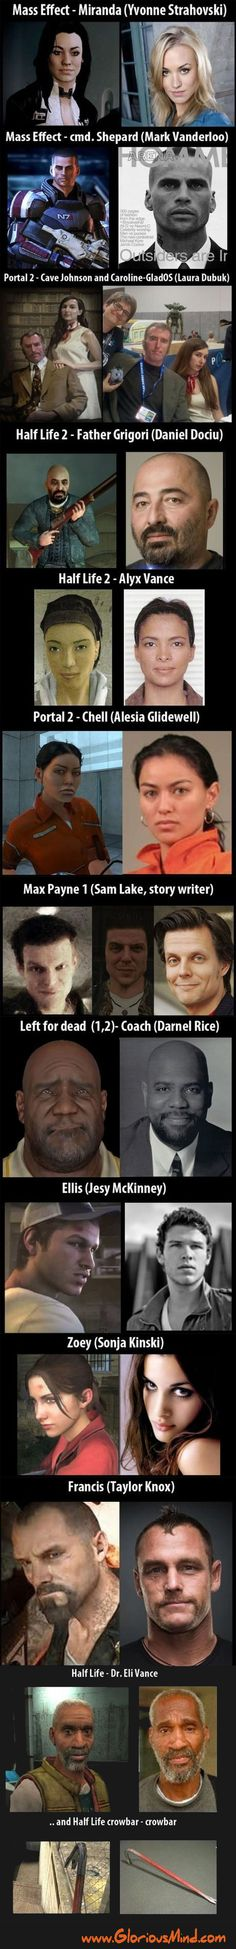 Game characters - in real life. Awkward?